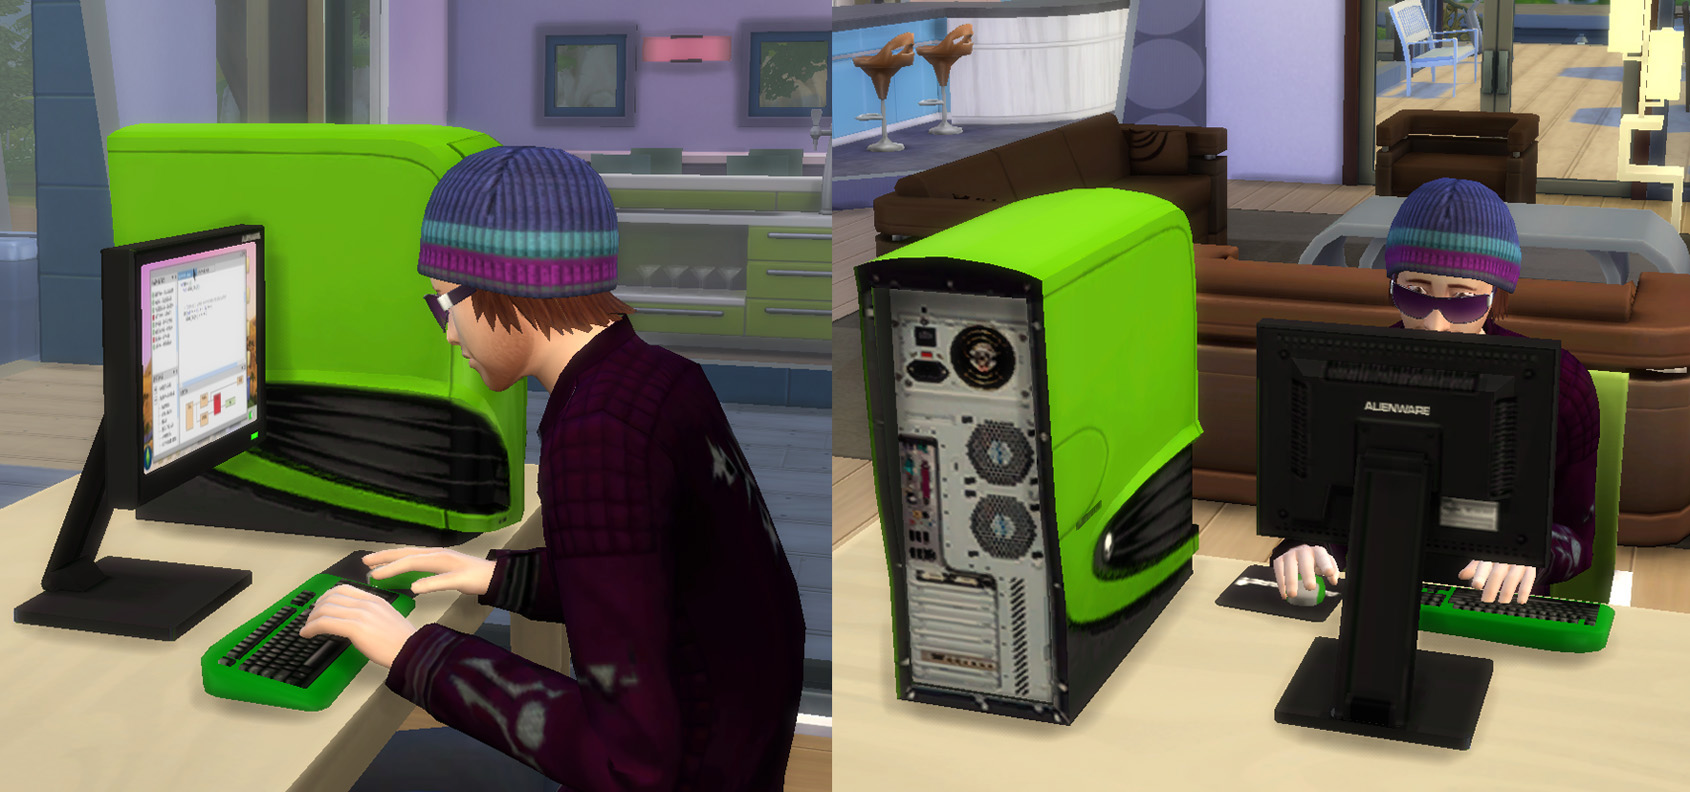 how to buy a computer in sims 4